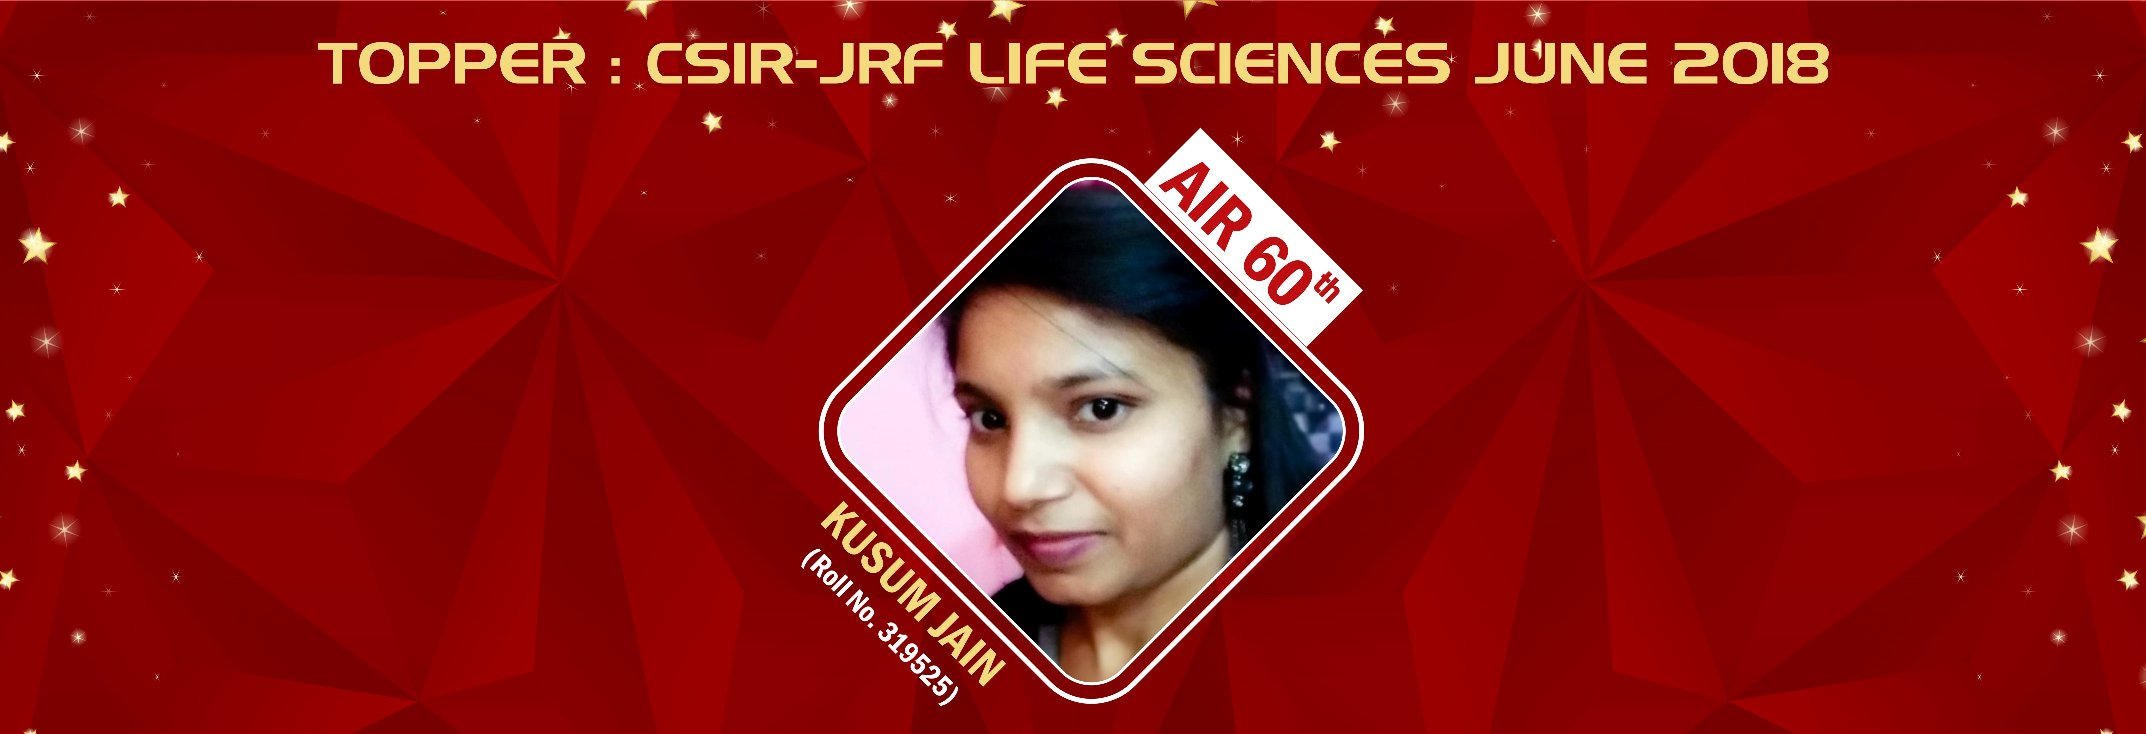 Life-Sciences-2